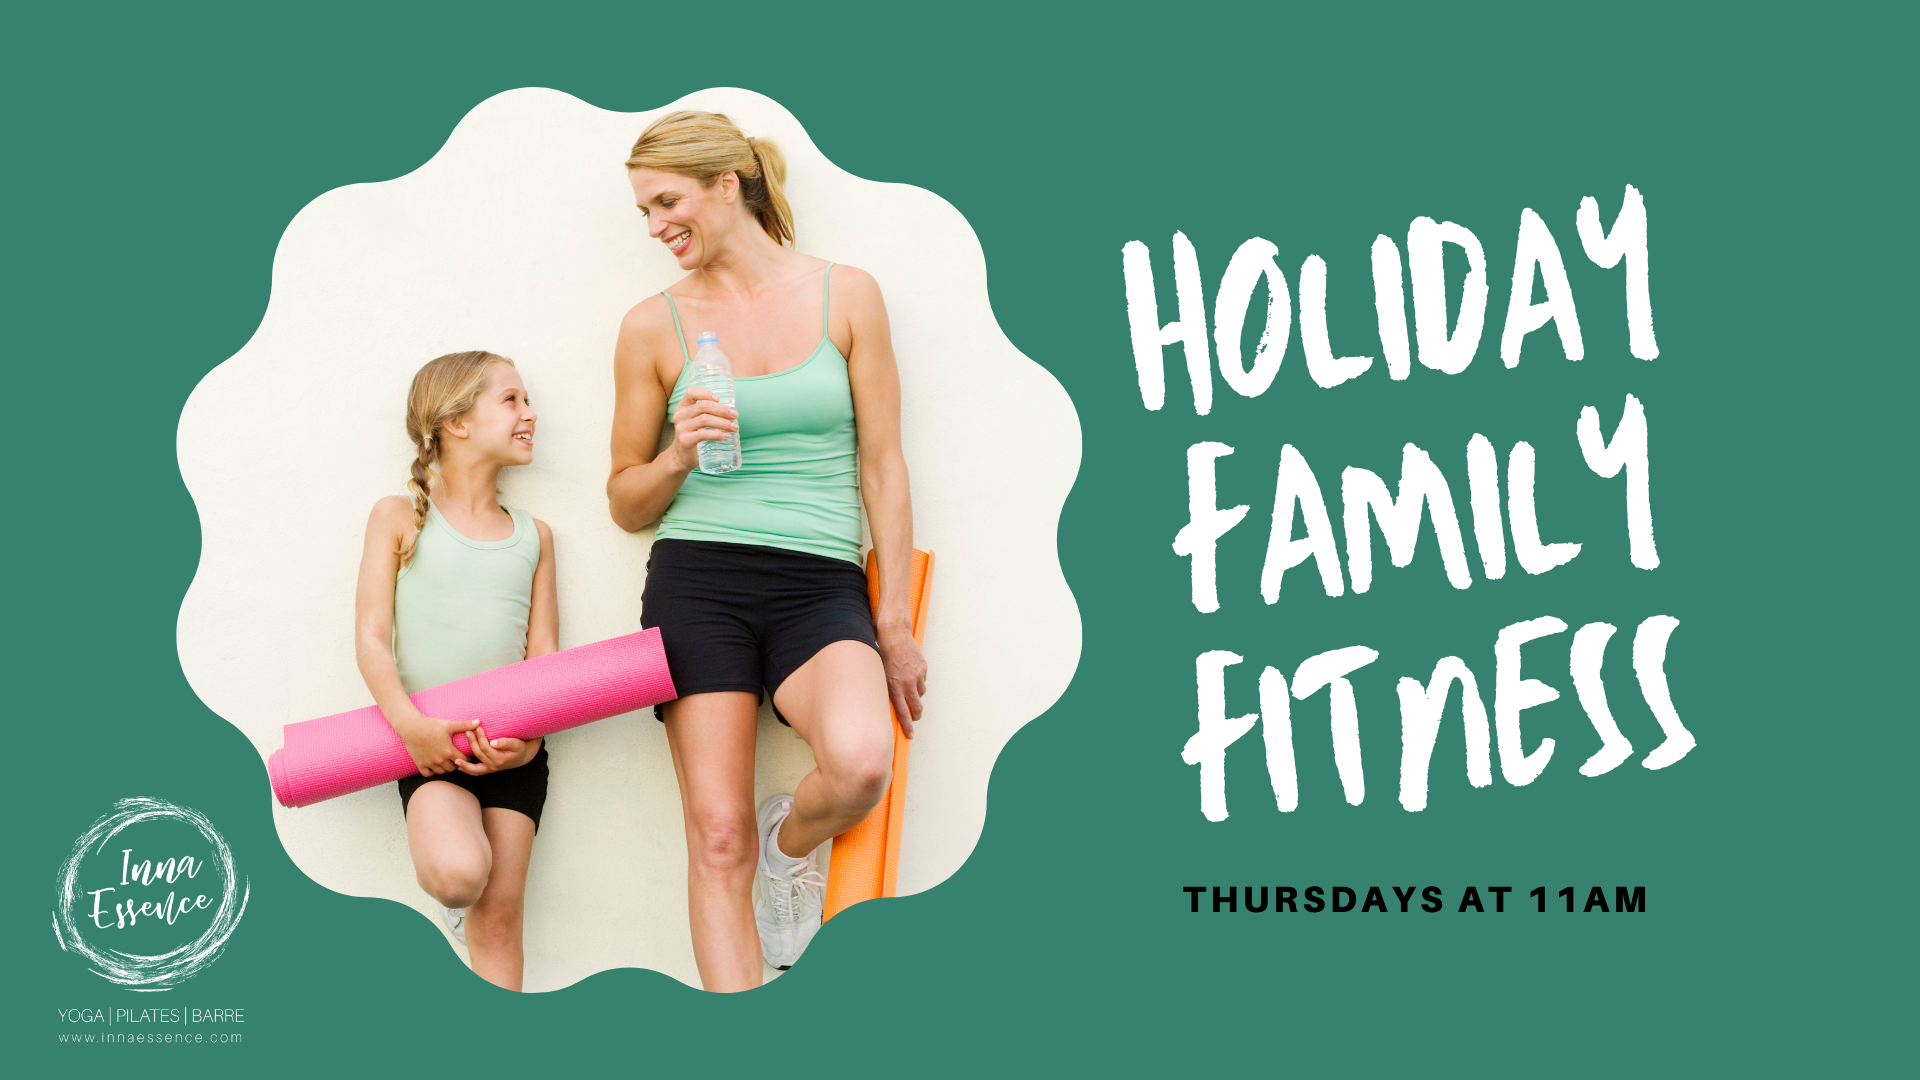 Inna Essence Holiday Family Fitness classes Underwood